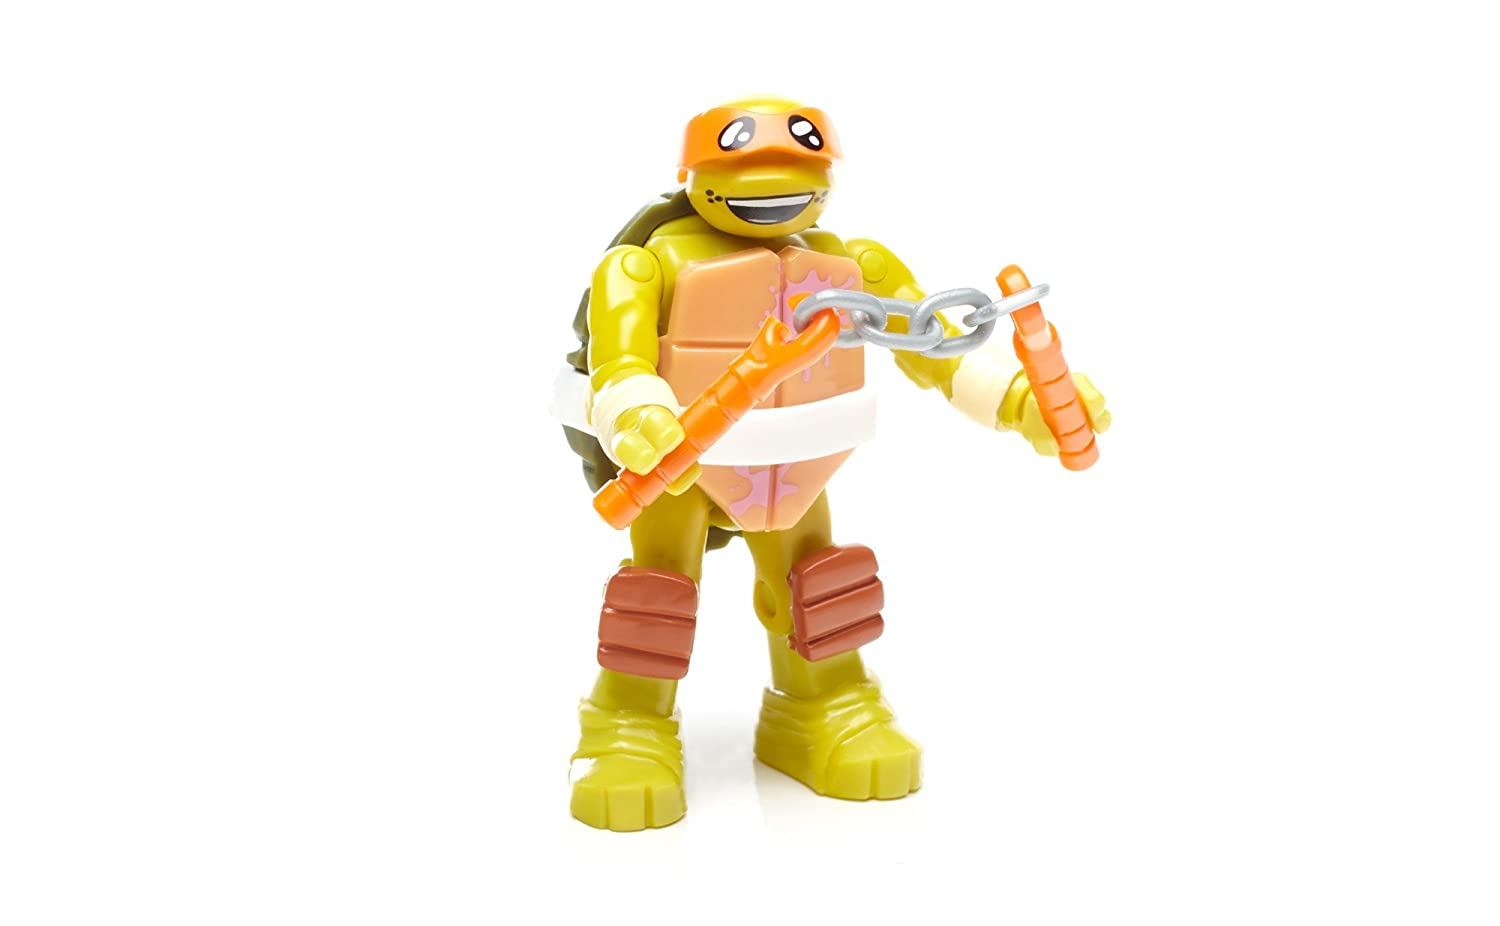 Amazon.com: Mega construx Teenage Mutant Ninja Turtles Mikey ...